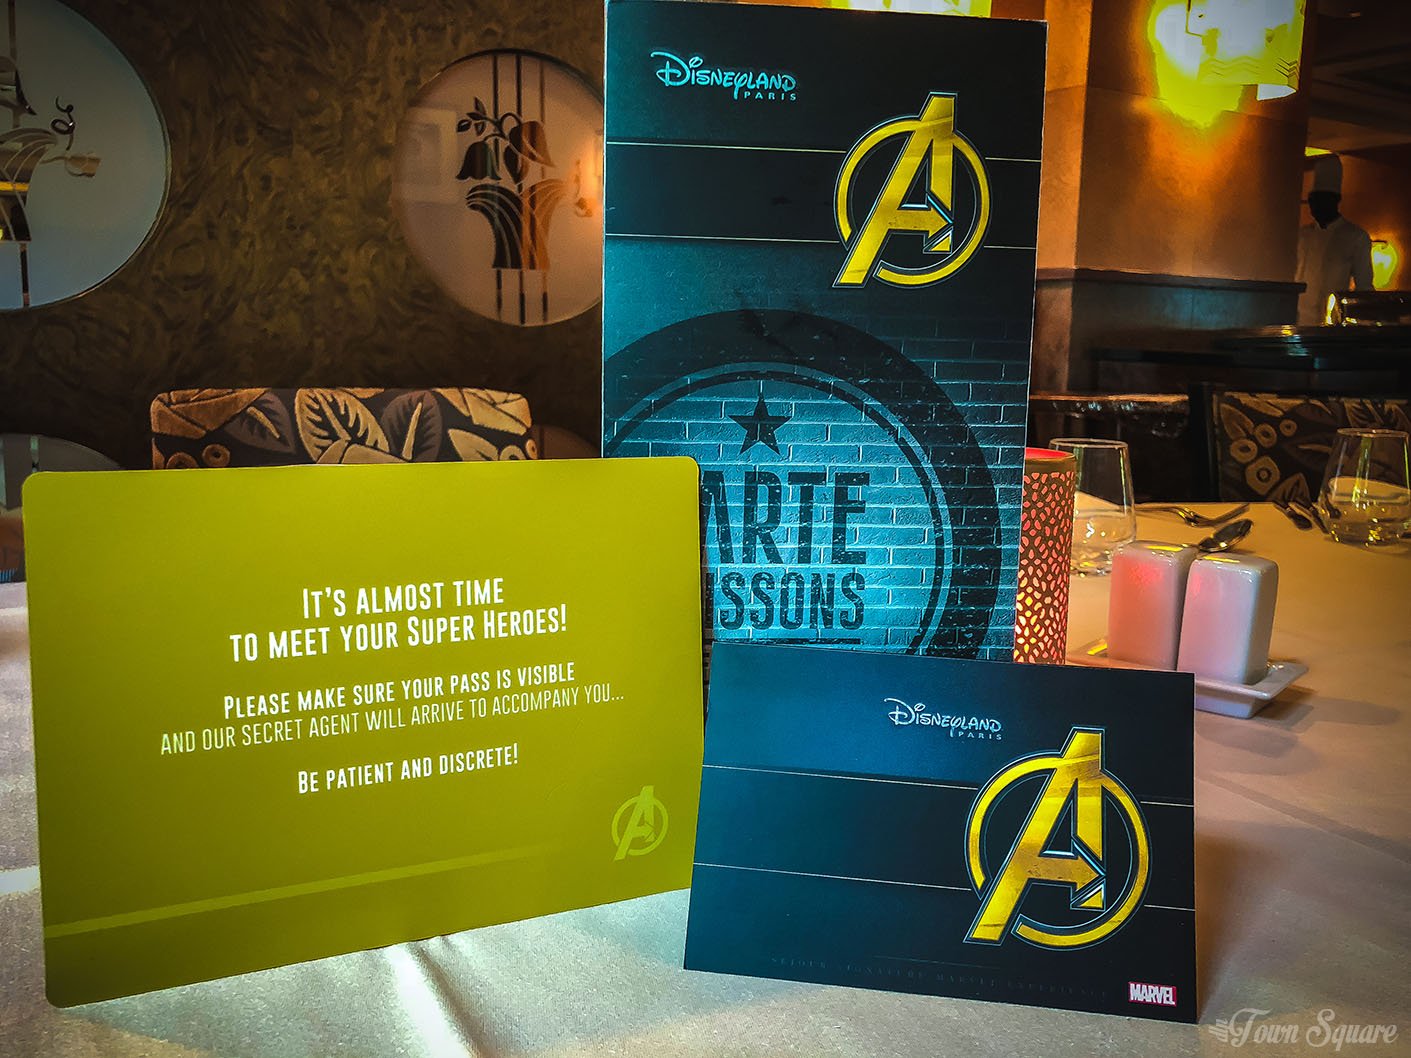 Marvel Signature Meal at Disneyland Paris